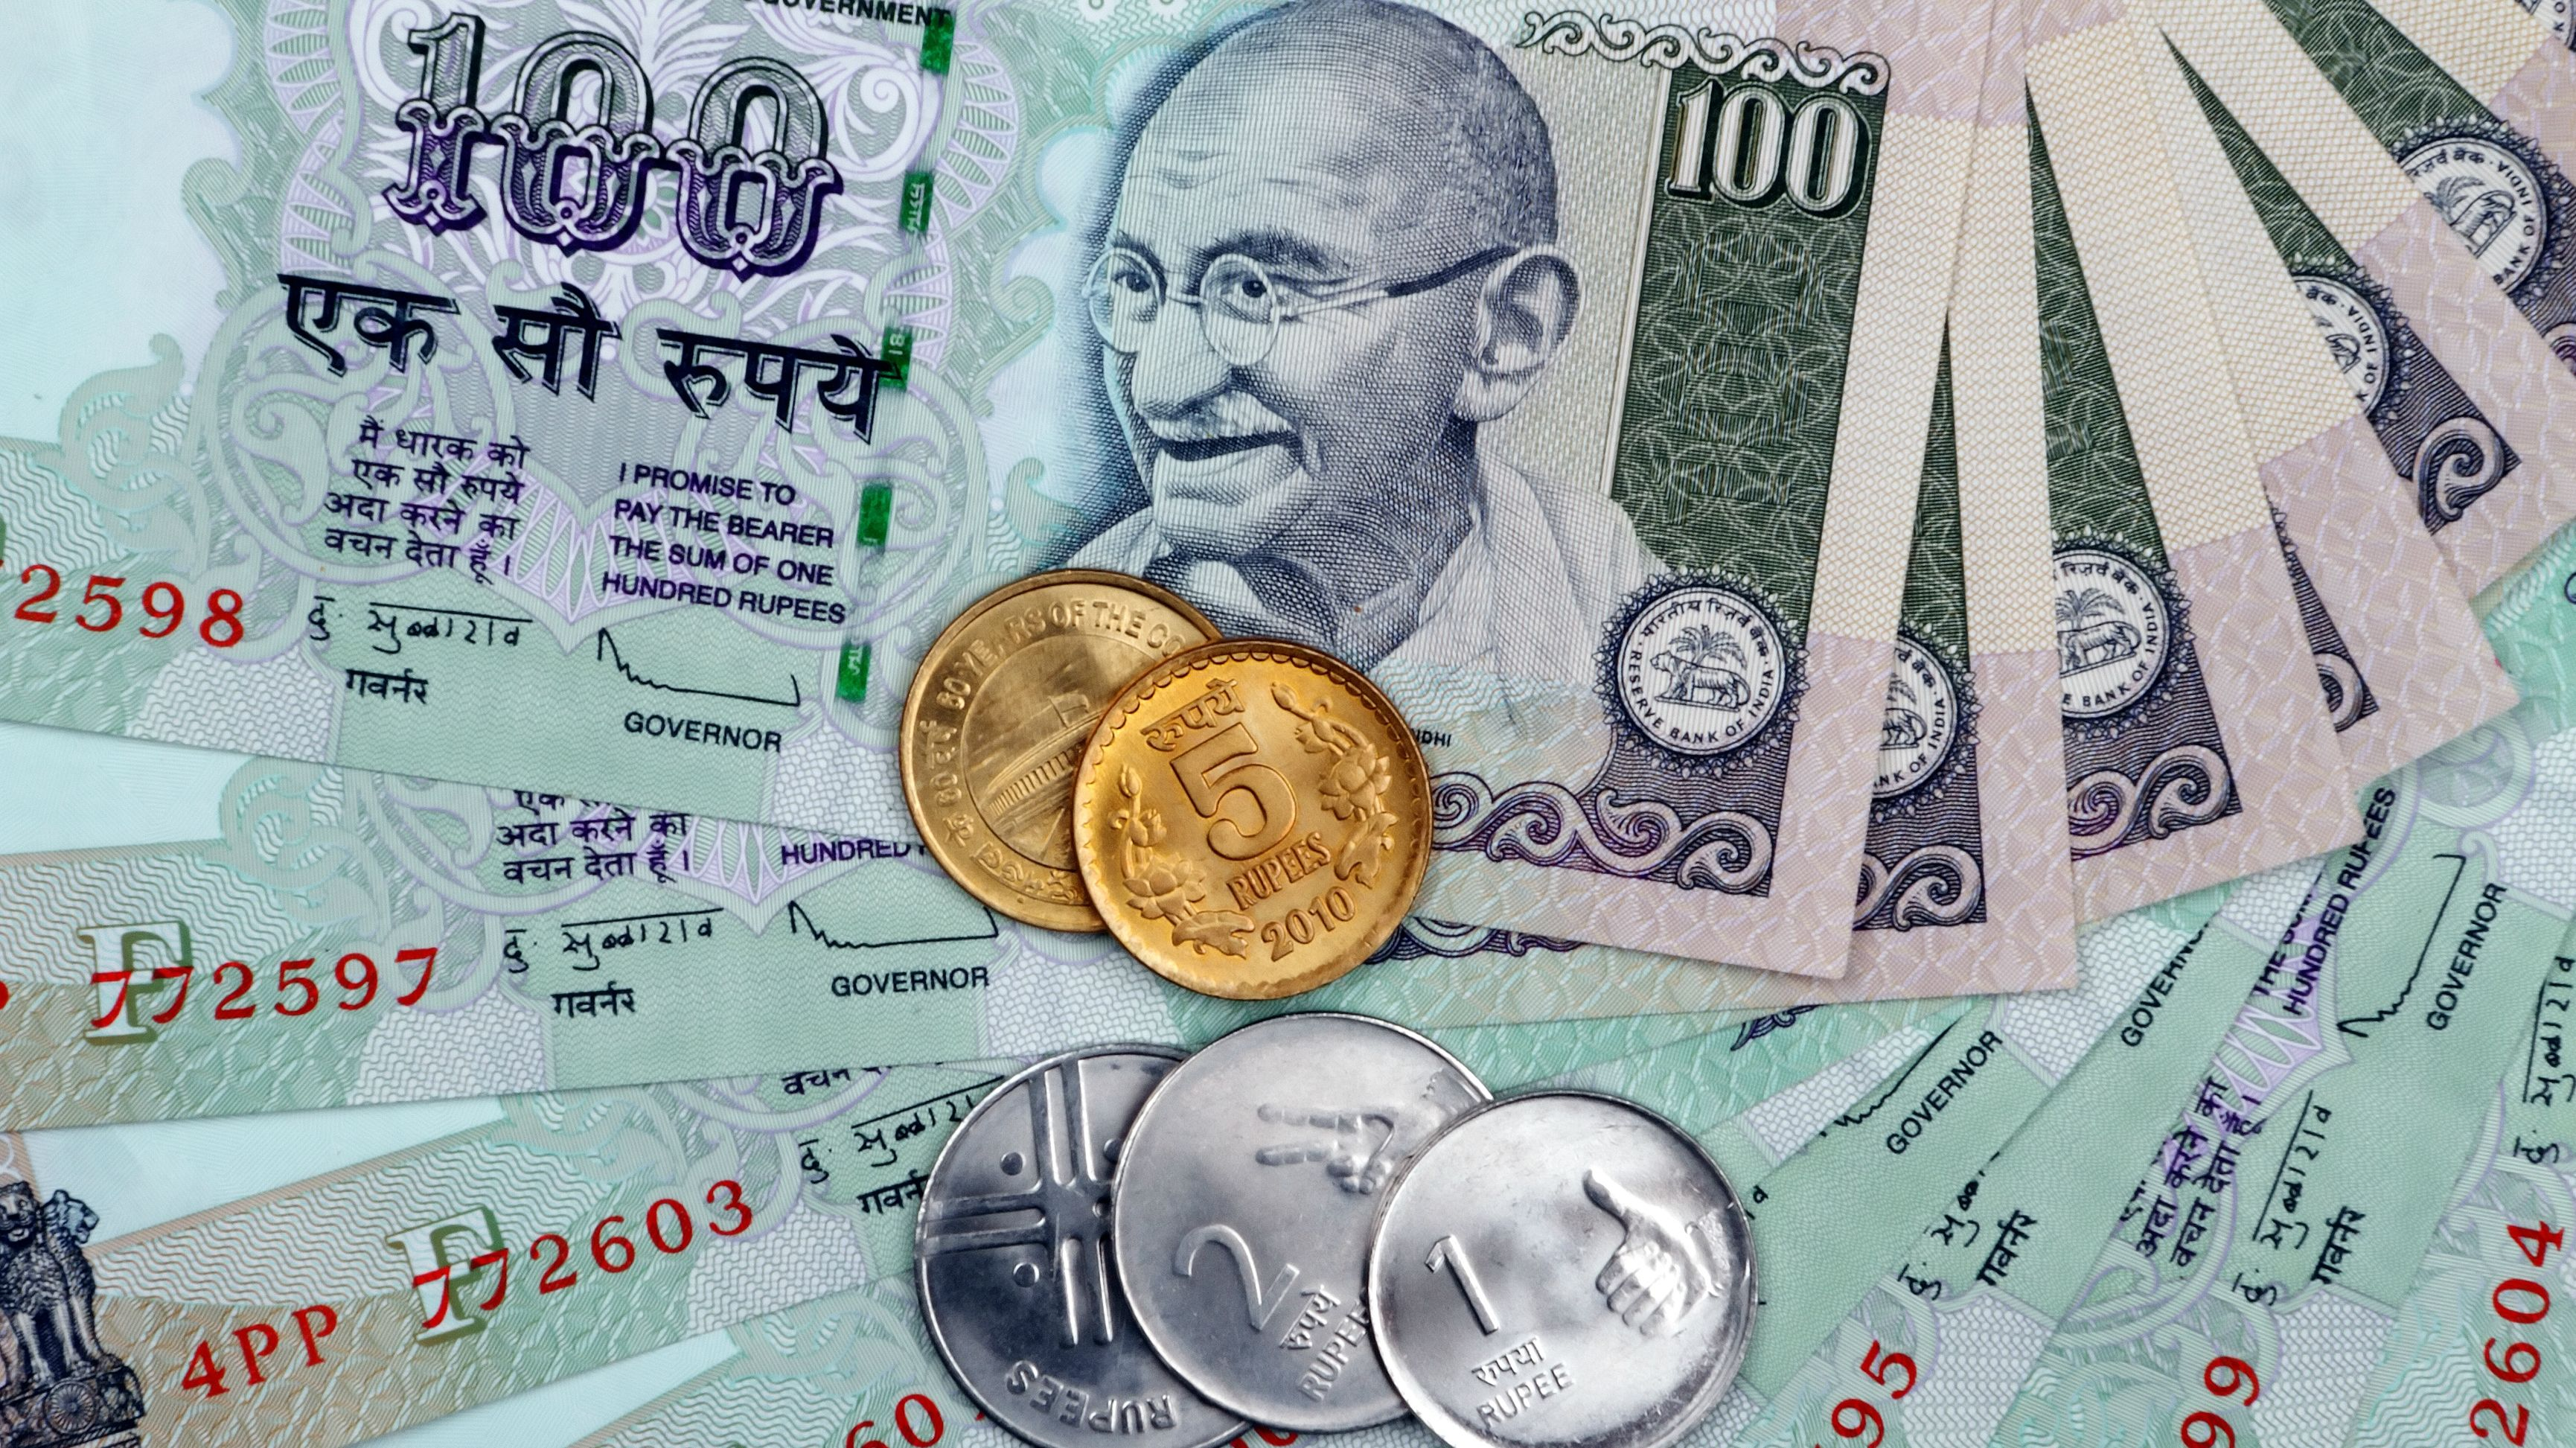 Economy Indian Currency Is Called Ruppe And One Is The Equivalent